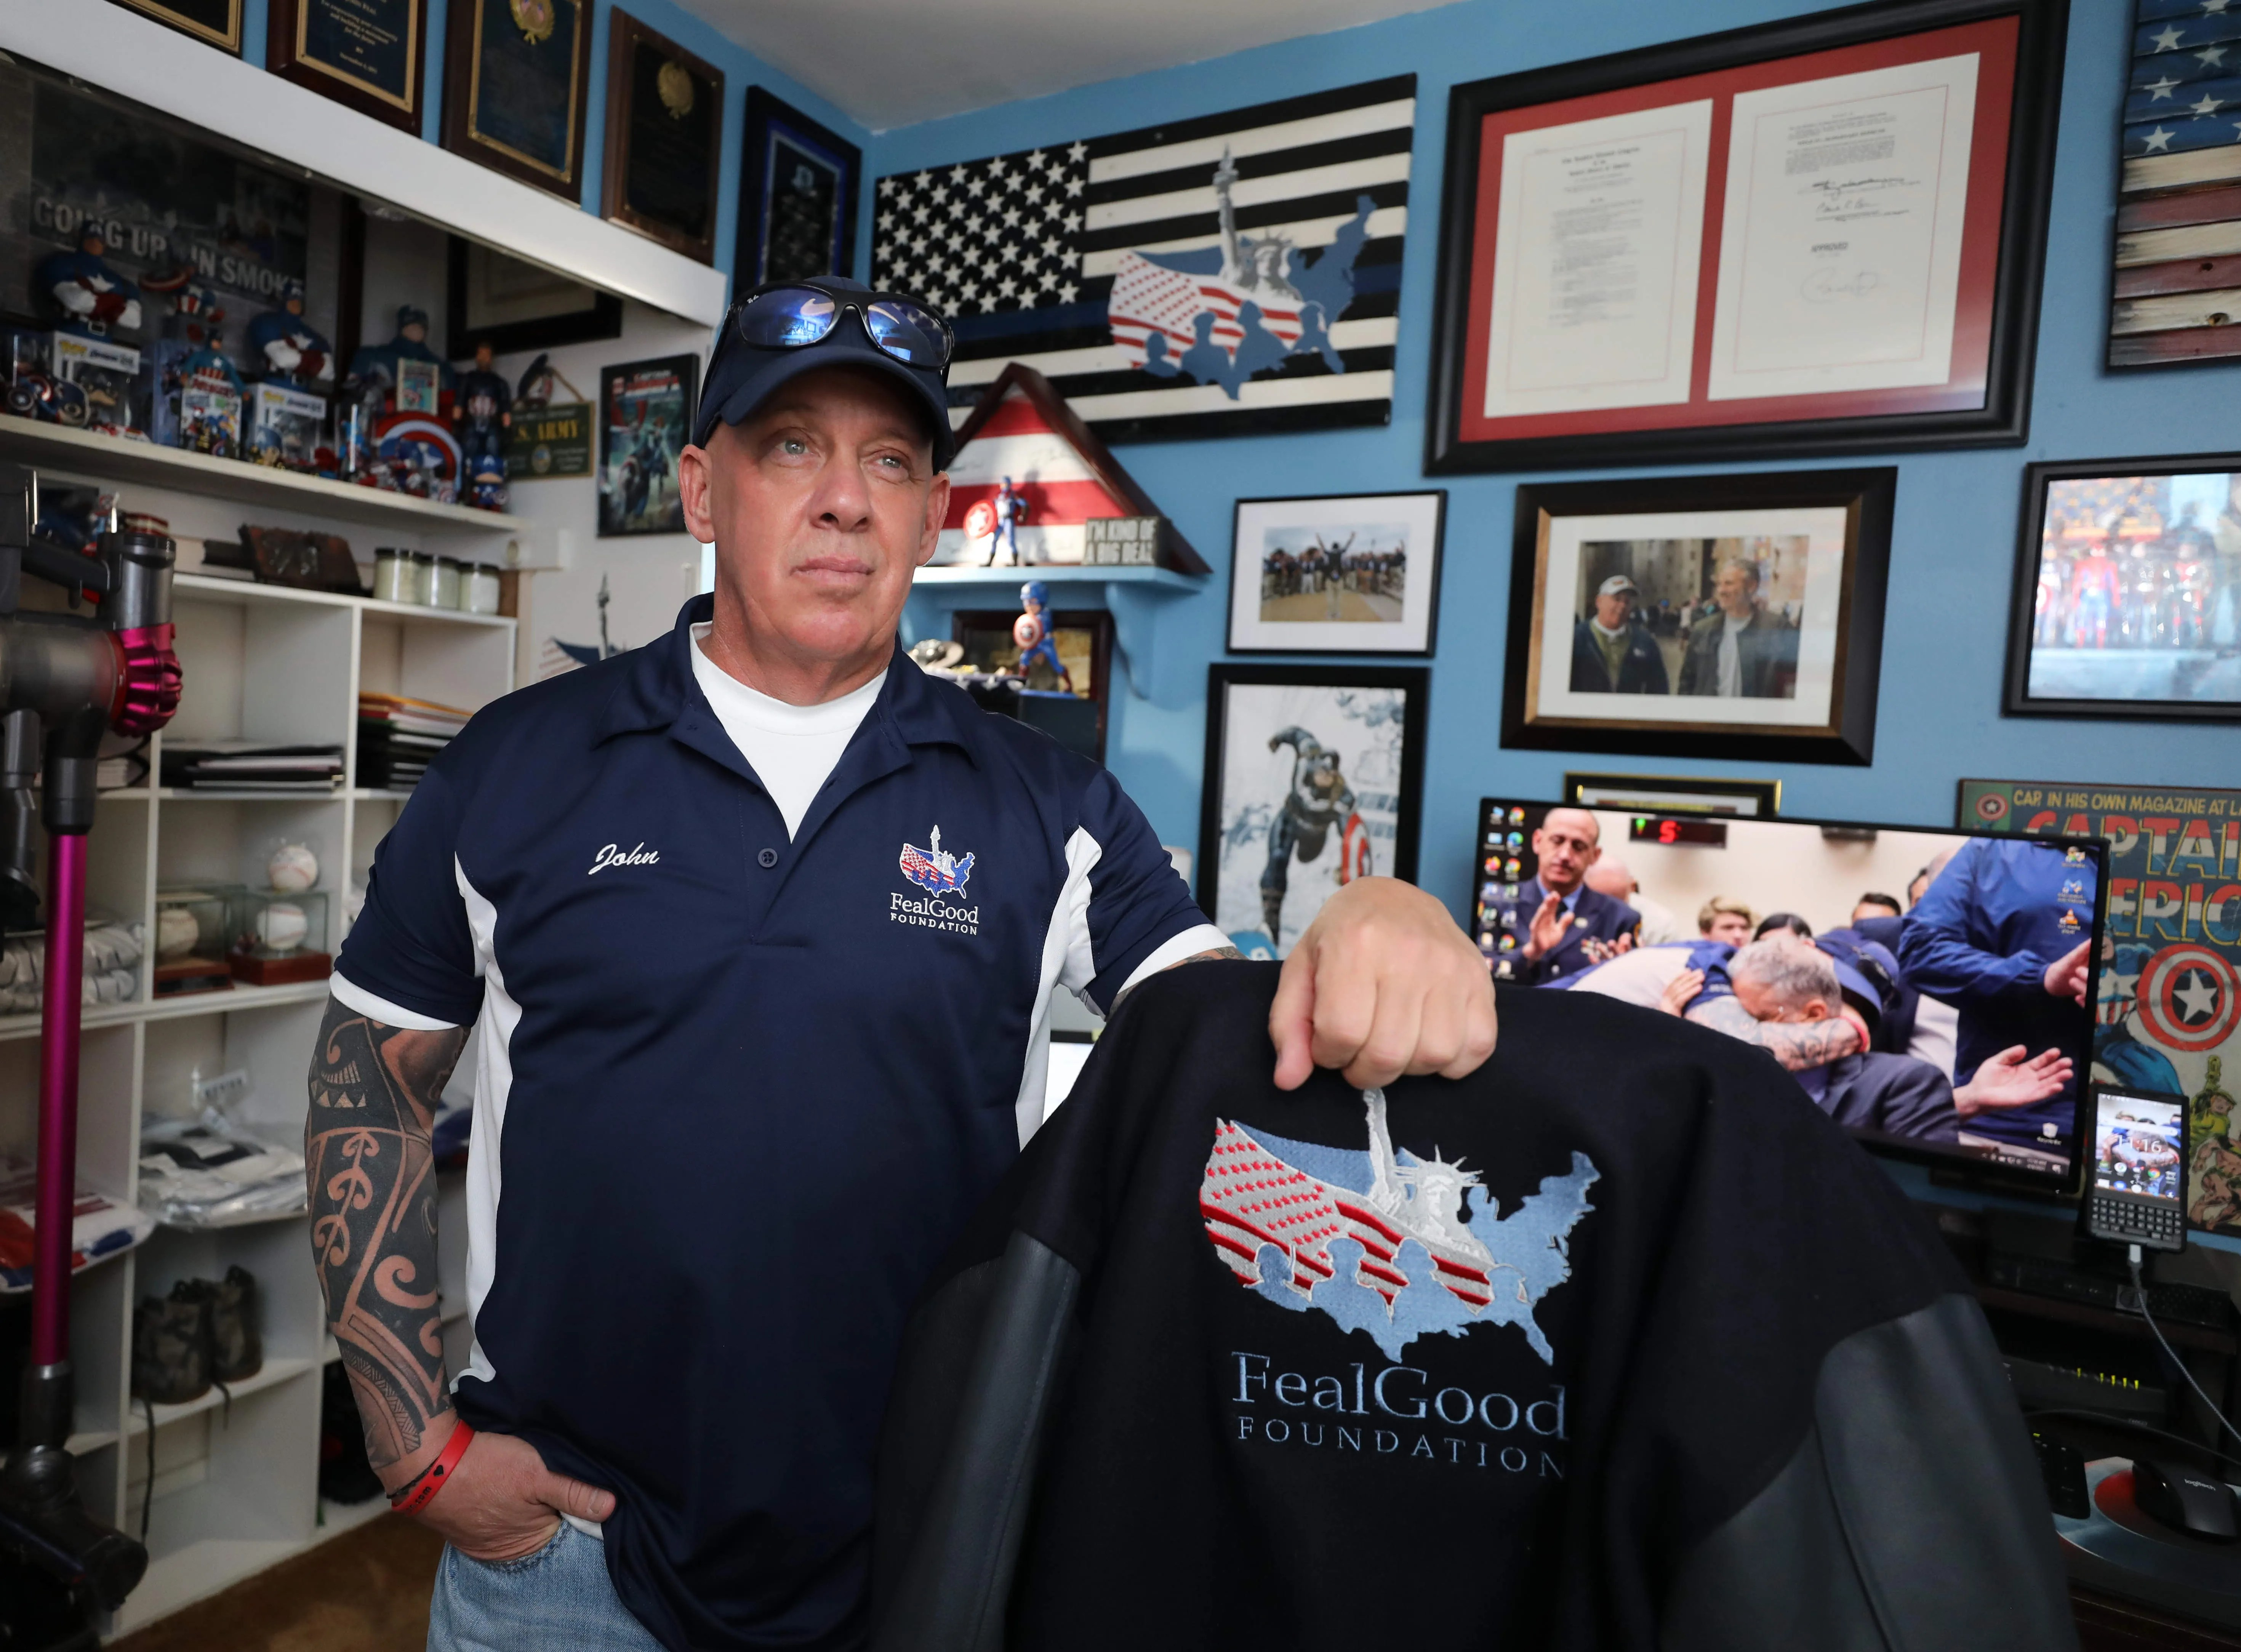 John Feal is pictured in his home office in Nesconset, New York, April 6, 2021. Feal, who established the FealGood Foundation, has become a leading activist in getting the 9/11 James Zadroga Act, the WTC Health Program and the 9/11 Victims Compensation Fund, passed and then renewed and then made permanent.